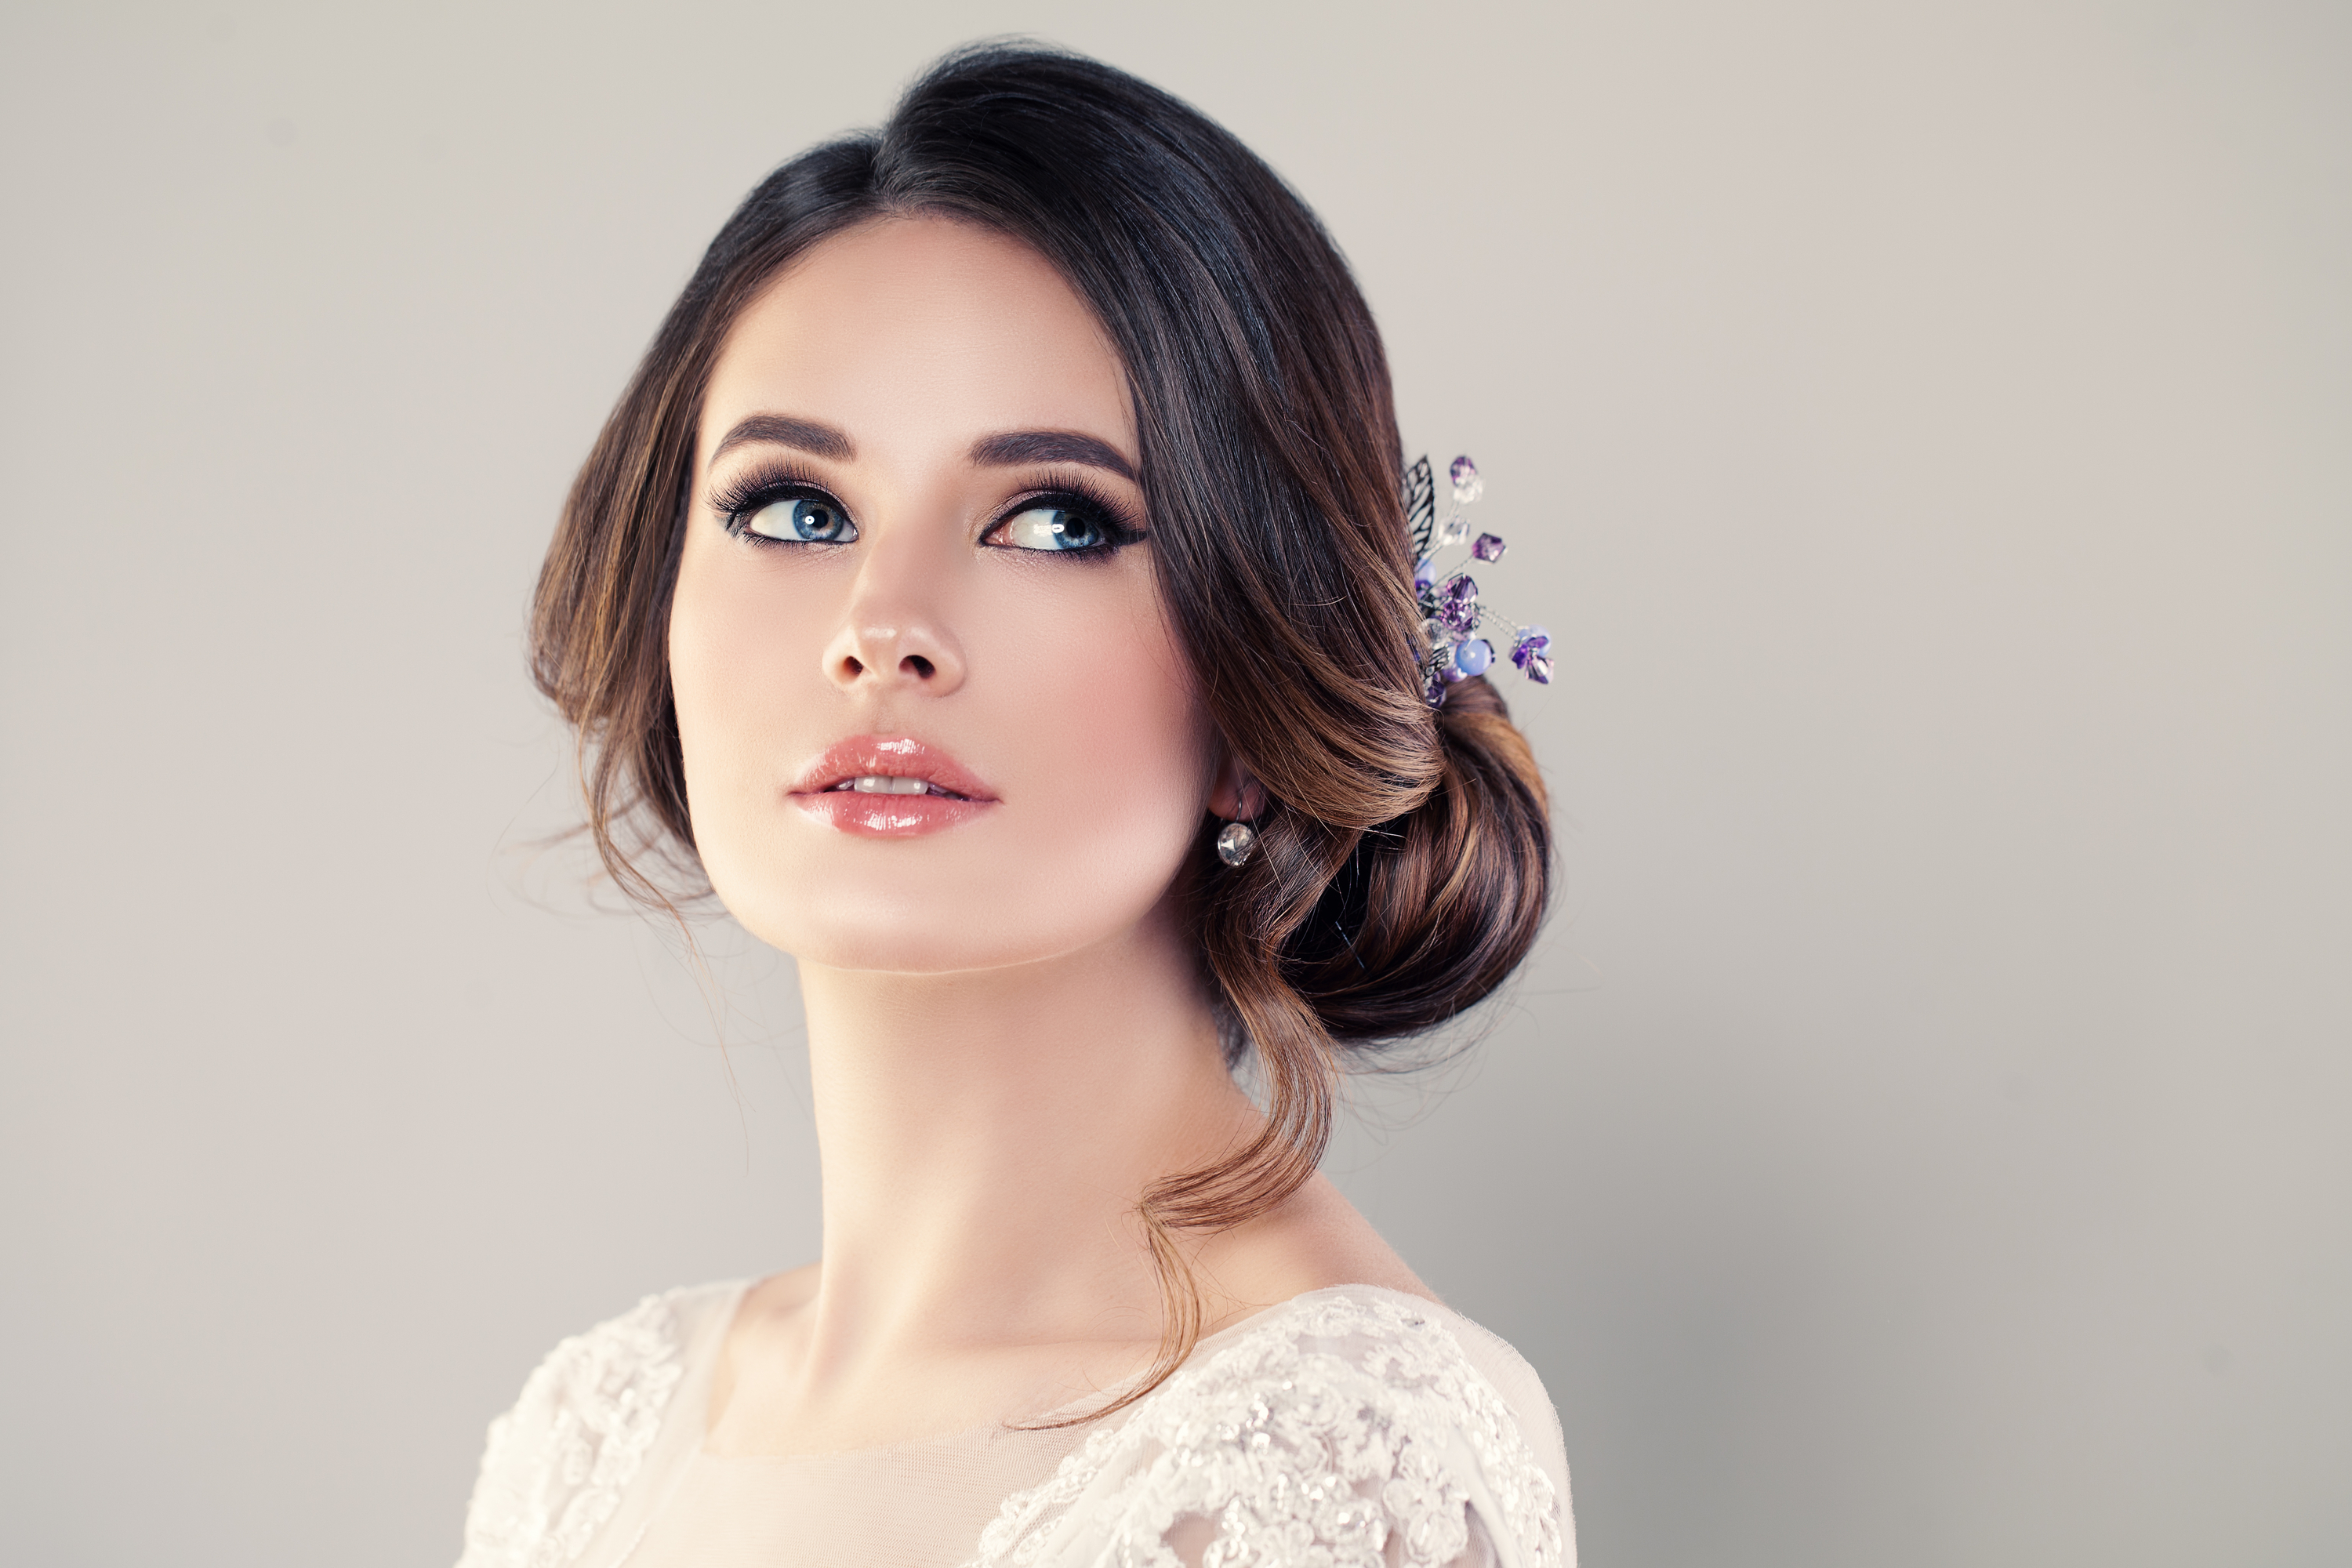 Everyone knows you need to change your makeup based on the time of year it is. If you're planning a winter wedding, make sure you know these winter wedding makeup tips.